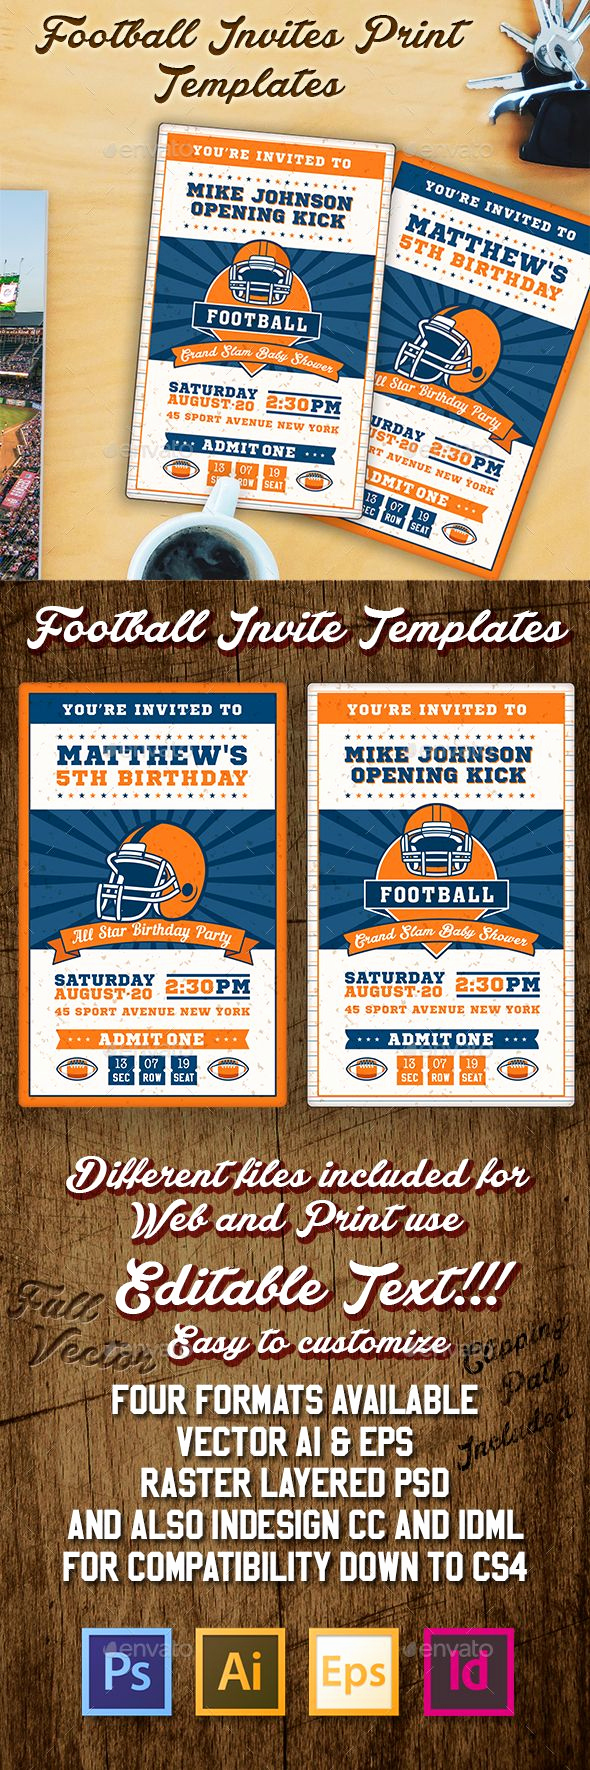 Free Football Ticket Invitation Template Best Of Best 25 Football Ticket Ideas On Pinterest